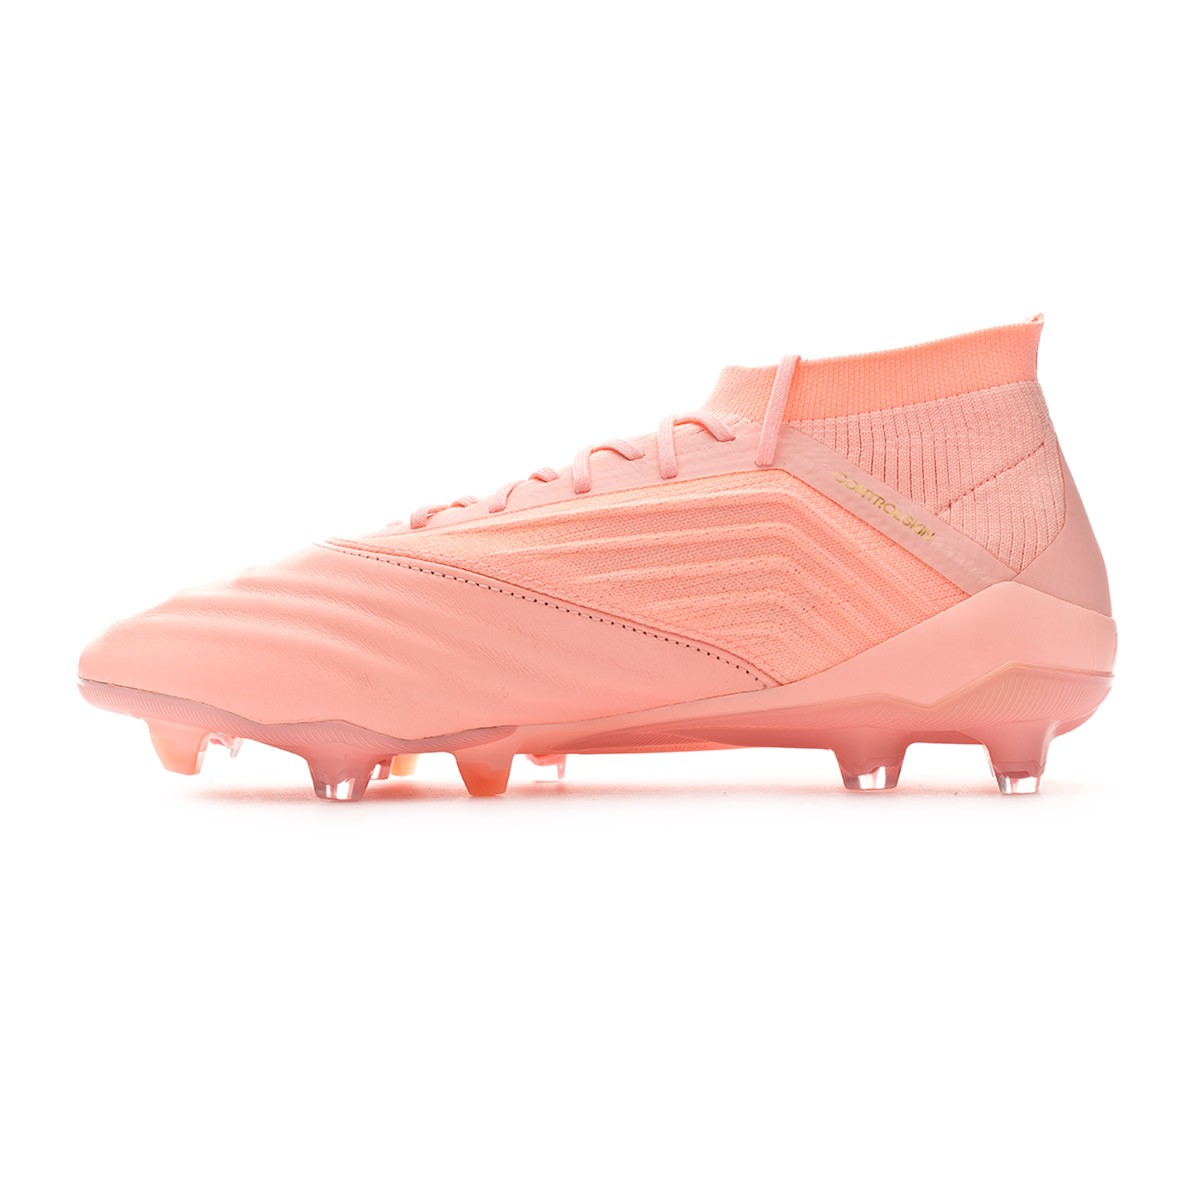 Boot adidas Predator 18.1 FG Piel Clear orange-Trace pink - Leaked soccer ad7057e1ee1a2